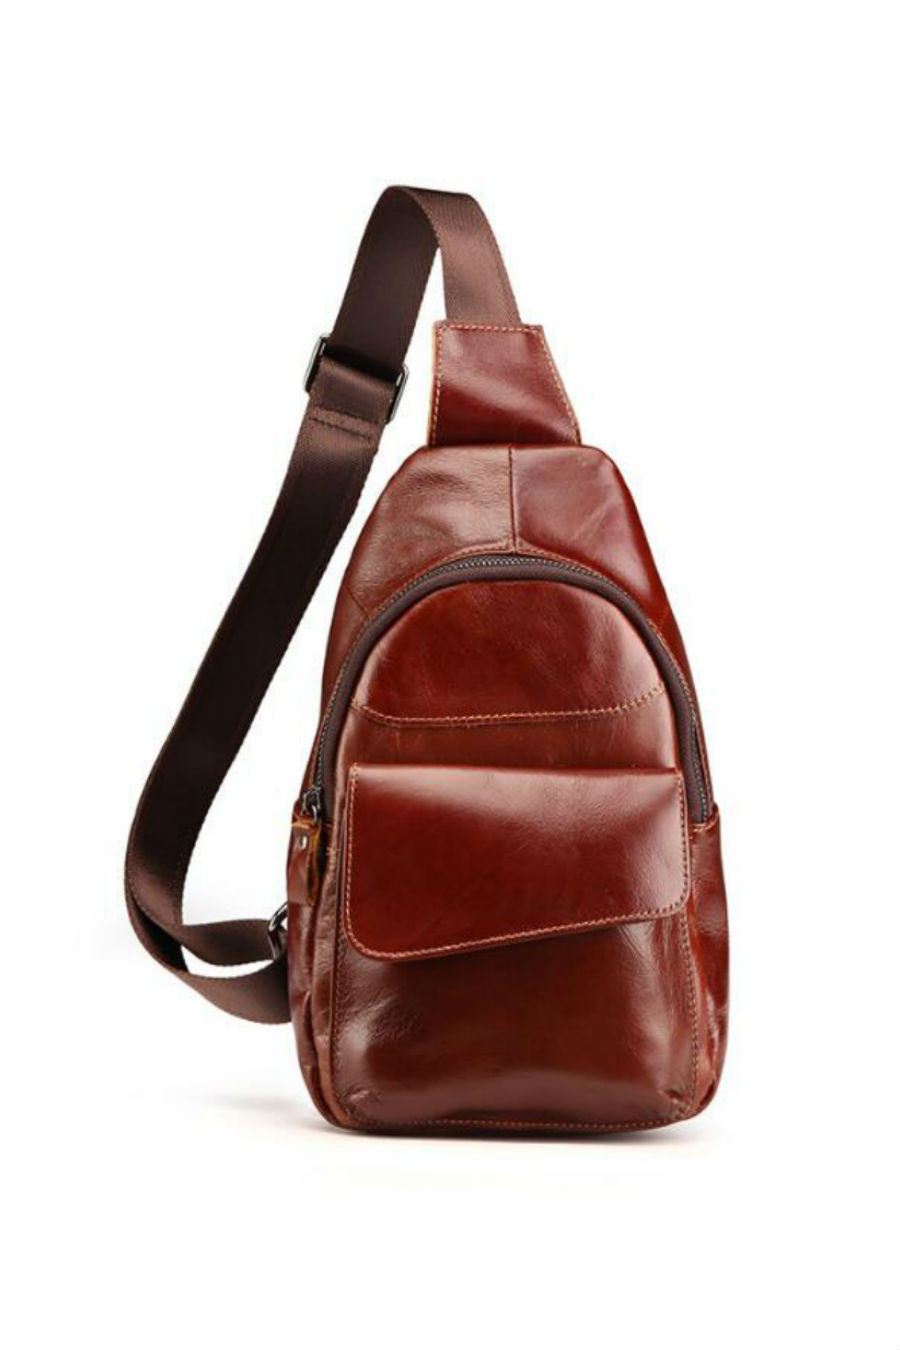 Men's Genuine Leather Sling Bag